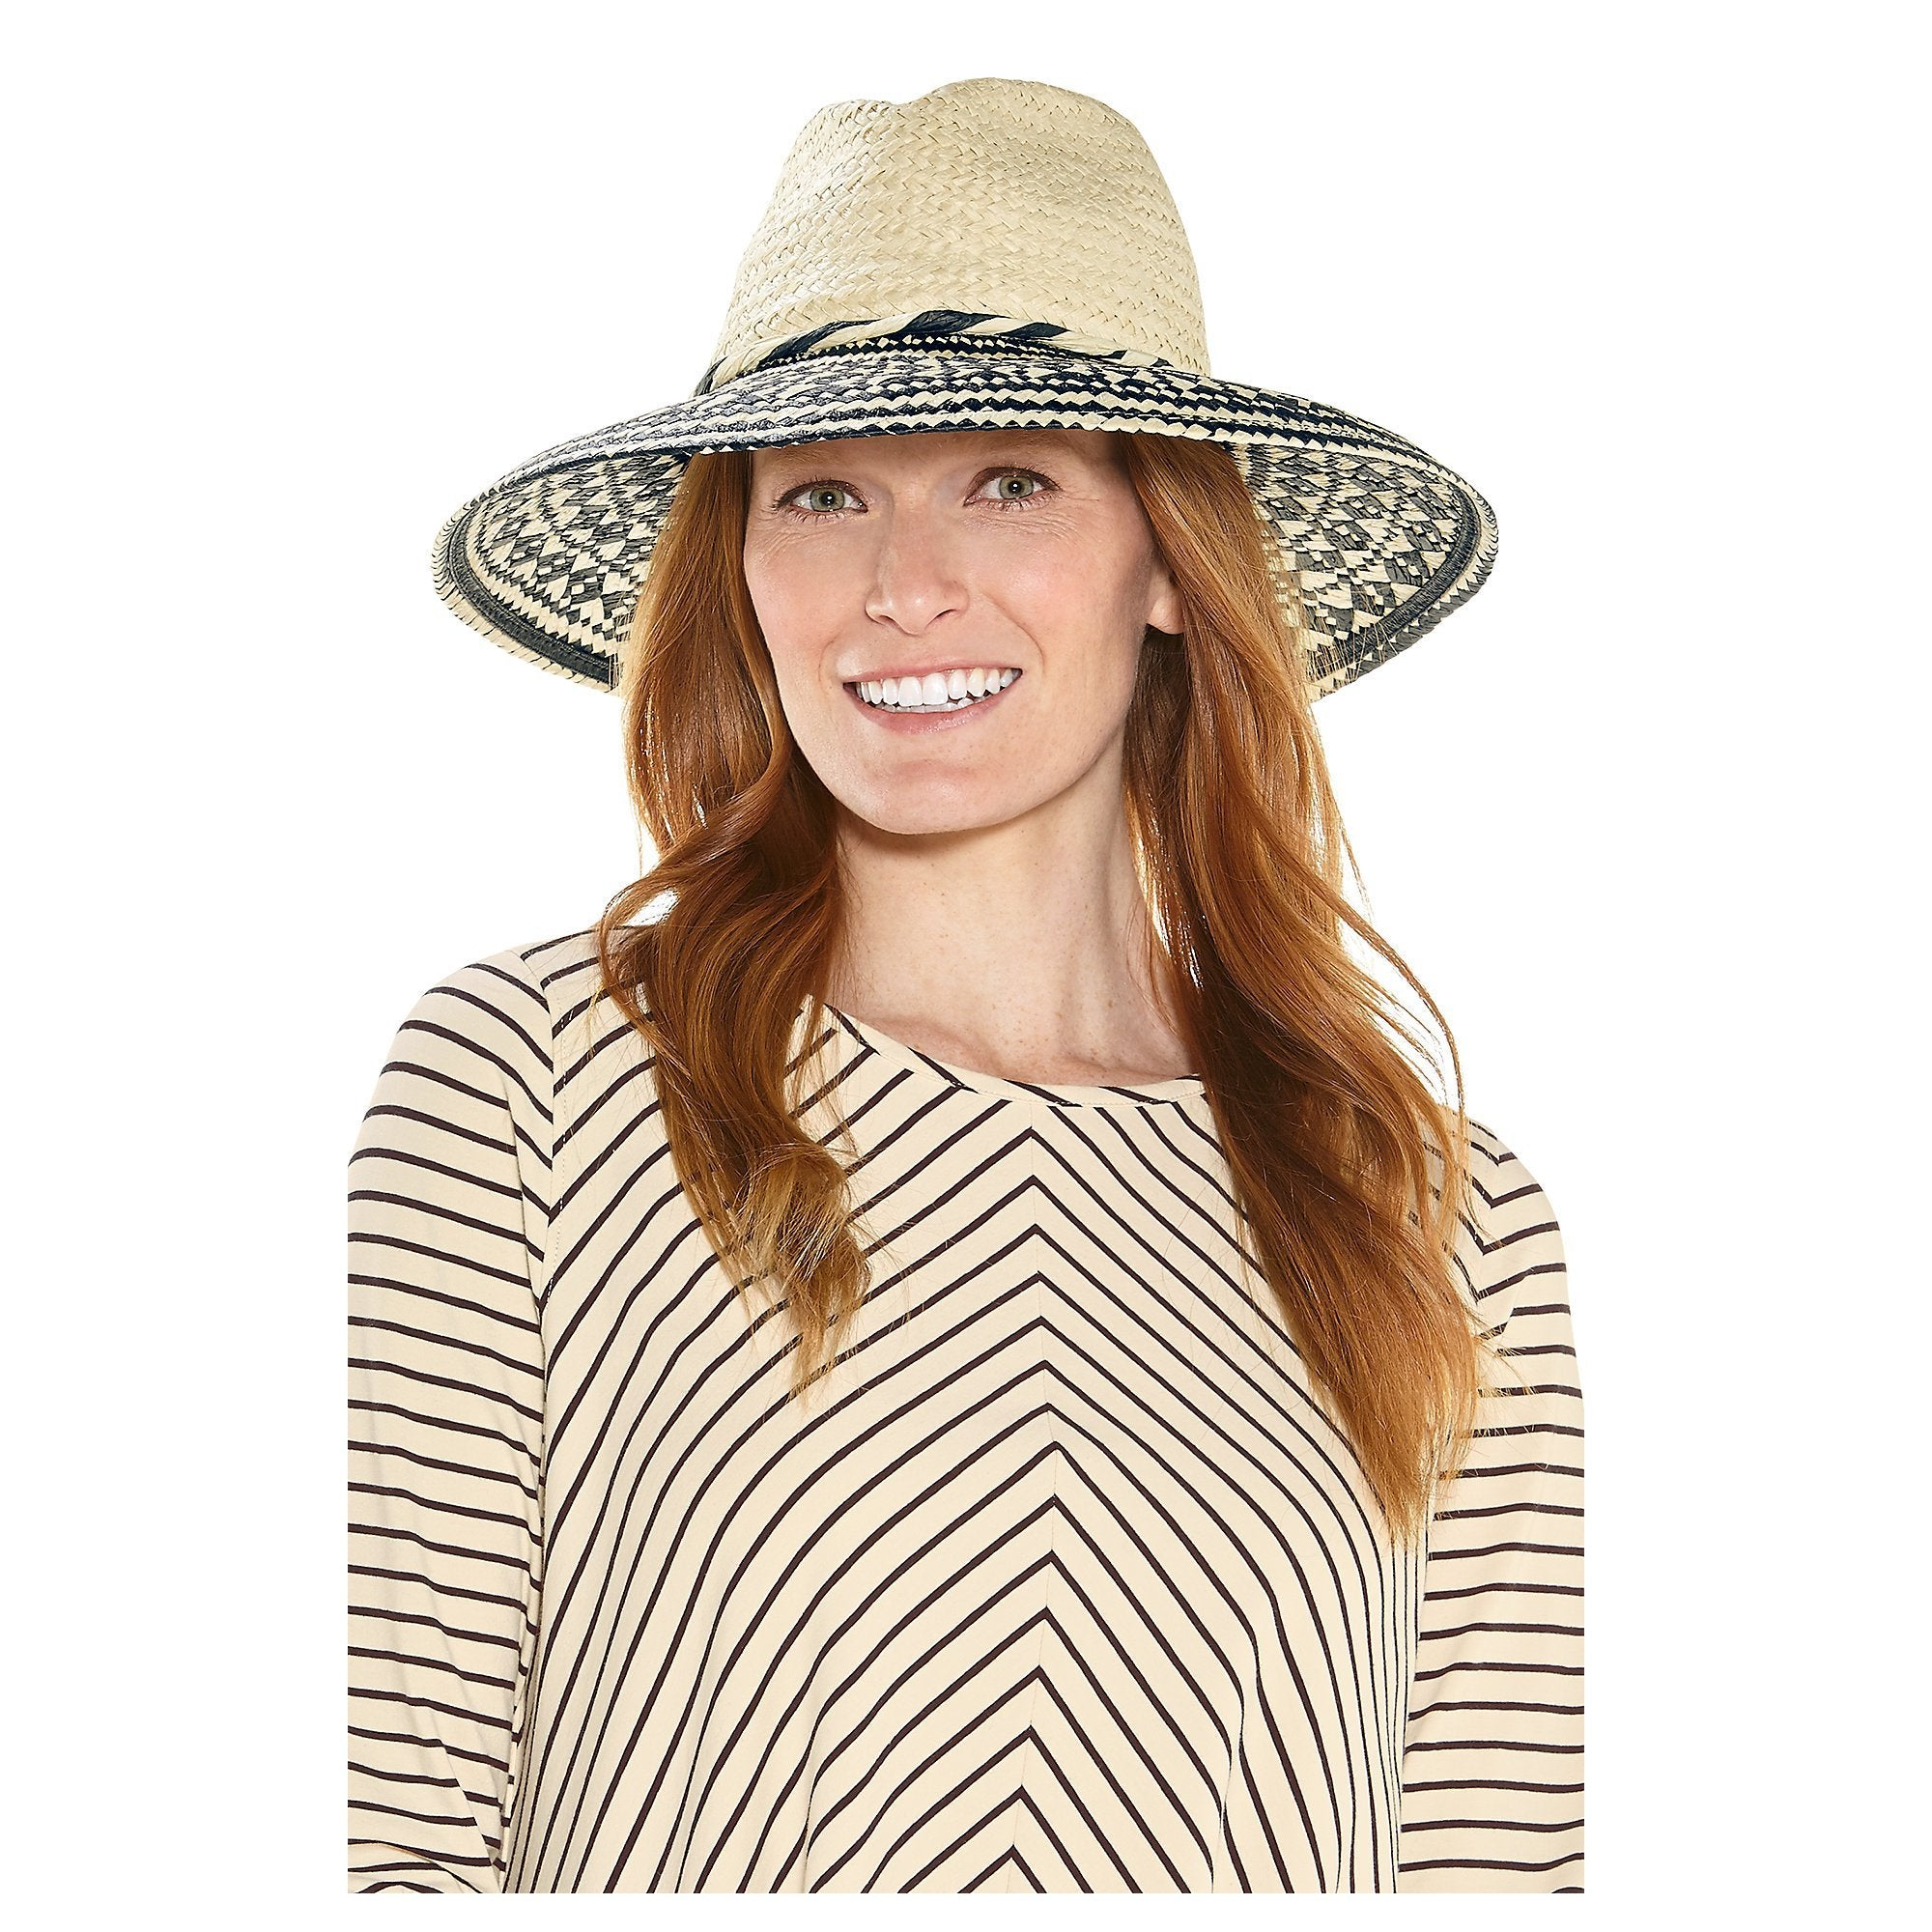 MACLAINE HAT - Molly's! A Chic and Unique Boutique